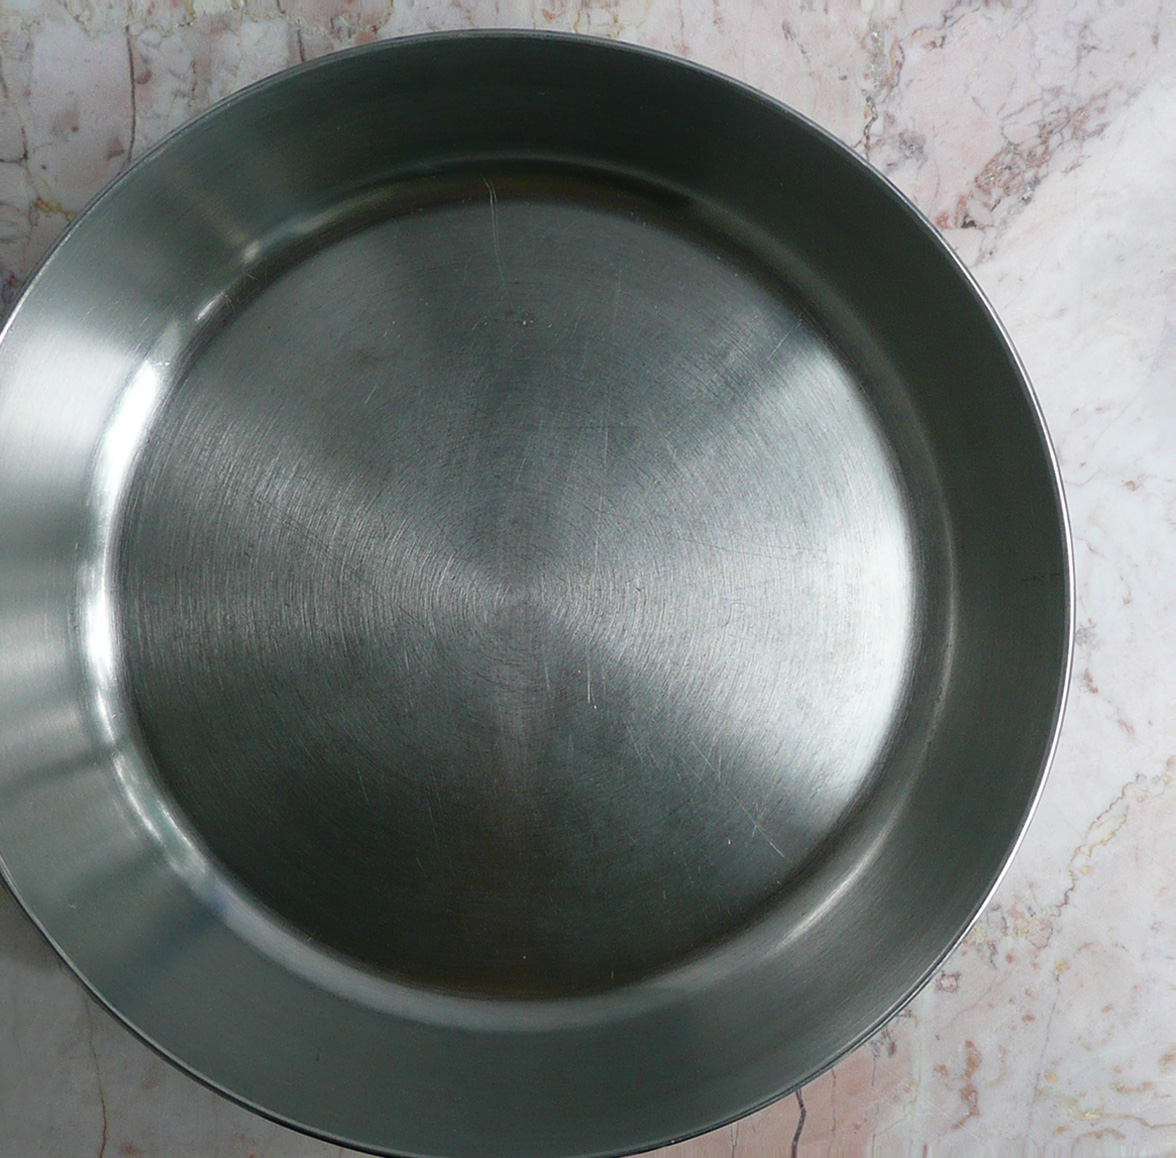 baking soda pan 3